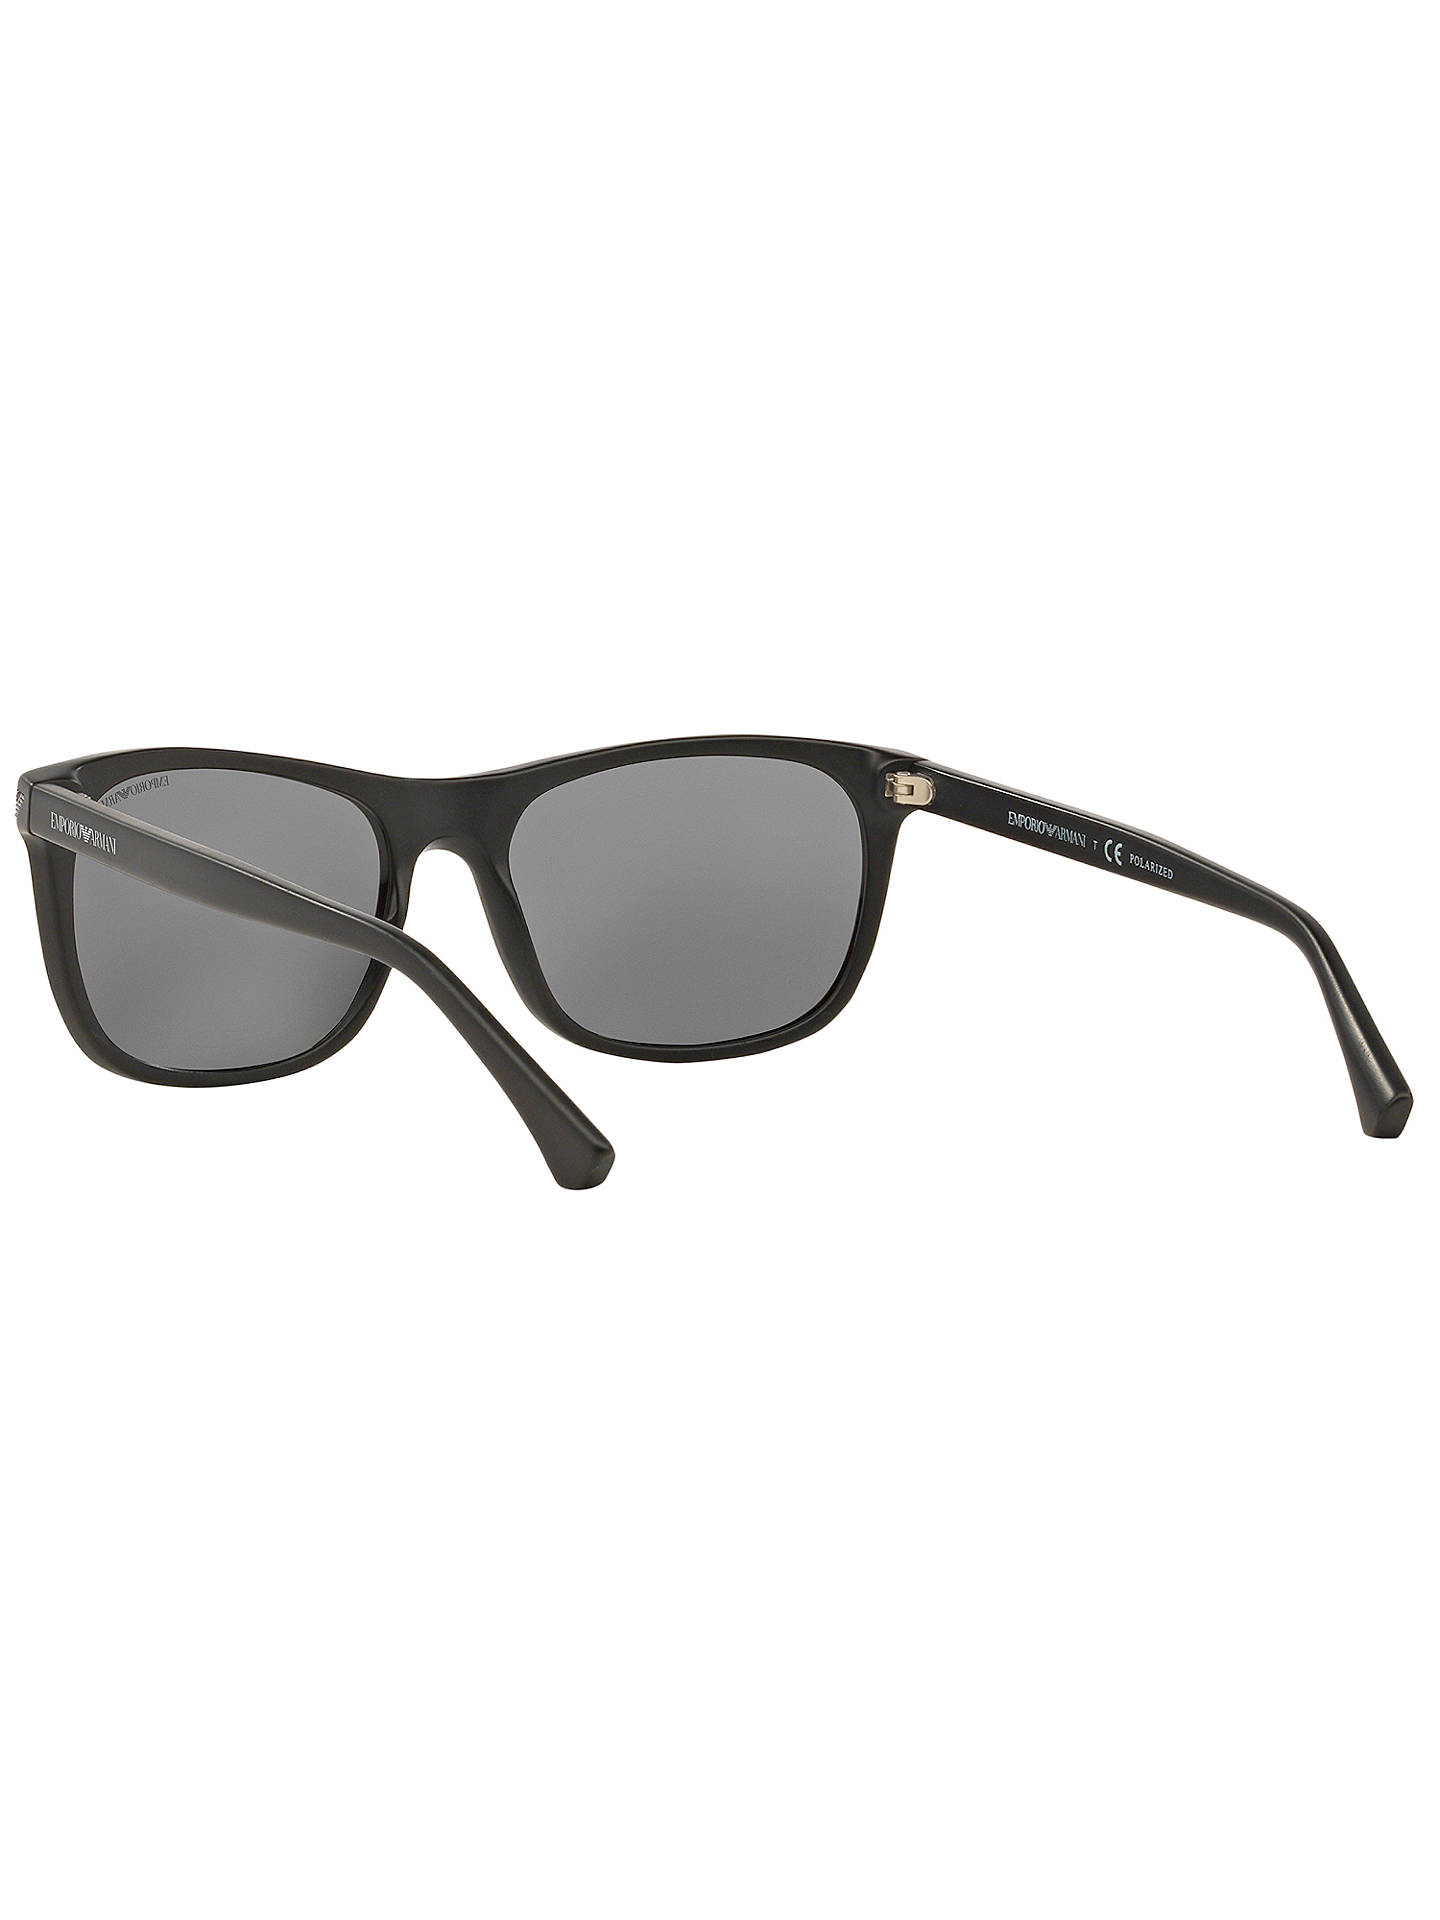 62fdcb2d1c05 ... Buy Emporio Armani EA4056 Polarised Rectangular Sunglasses